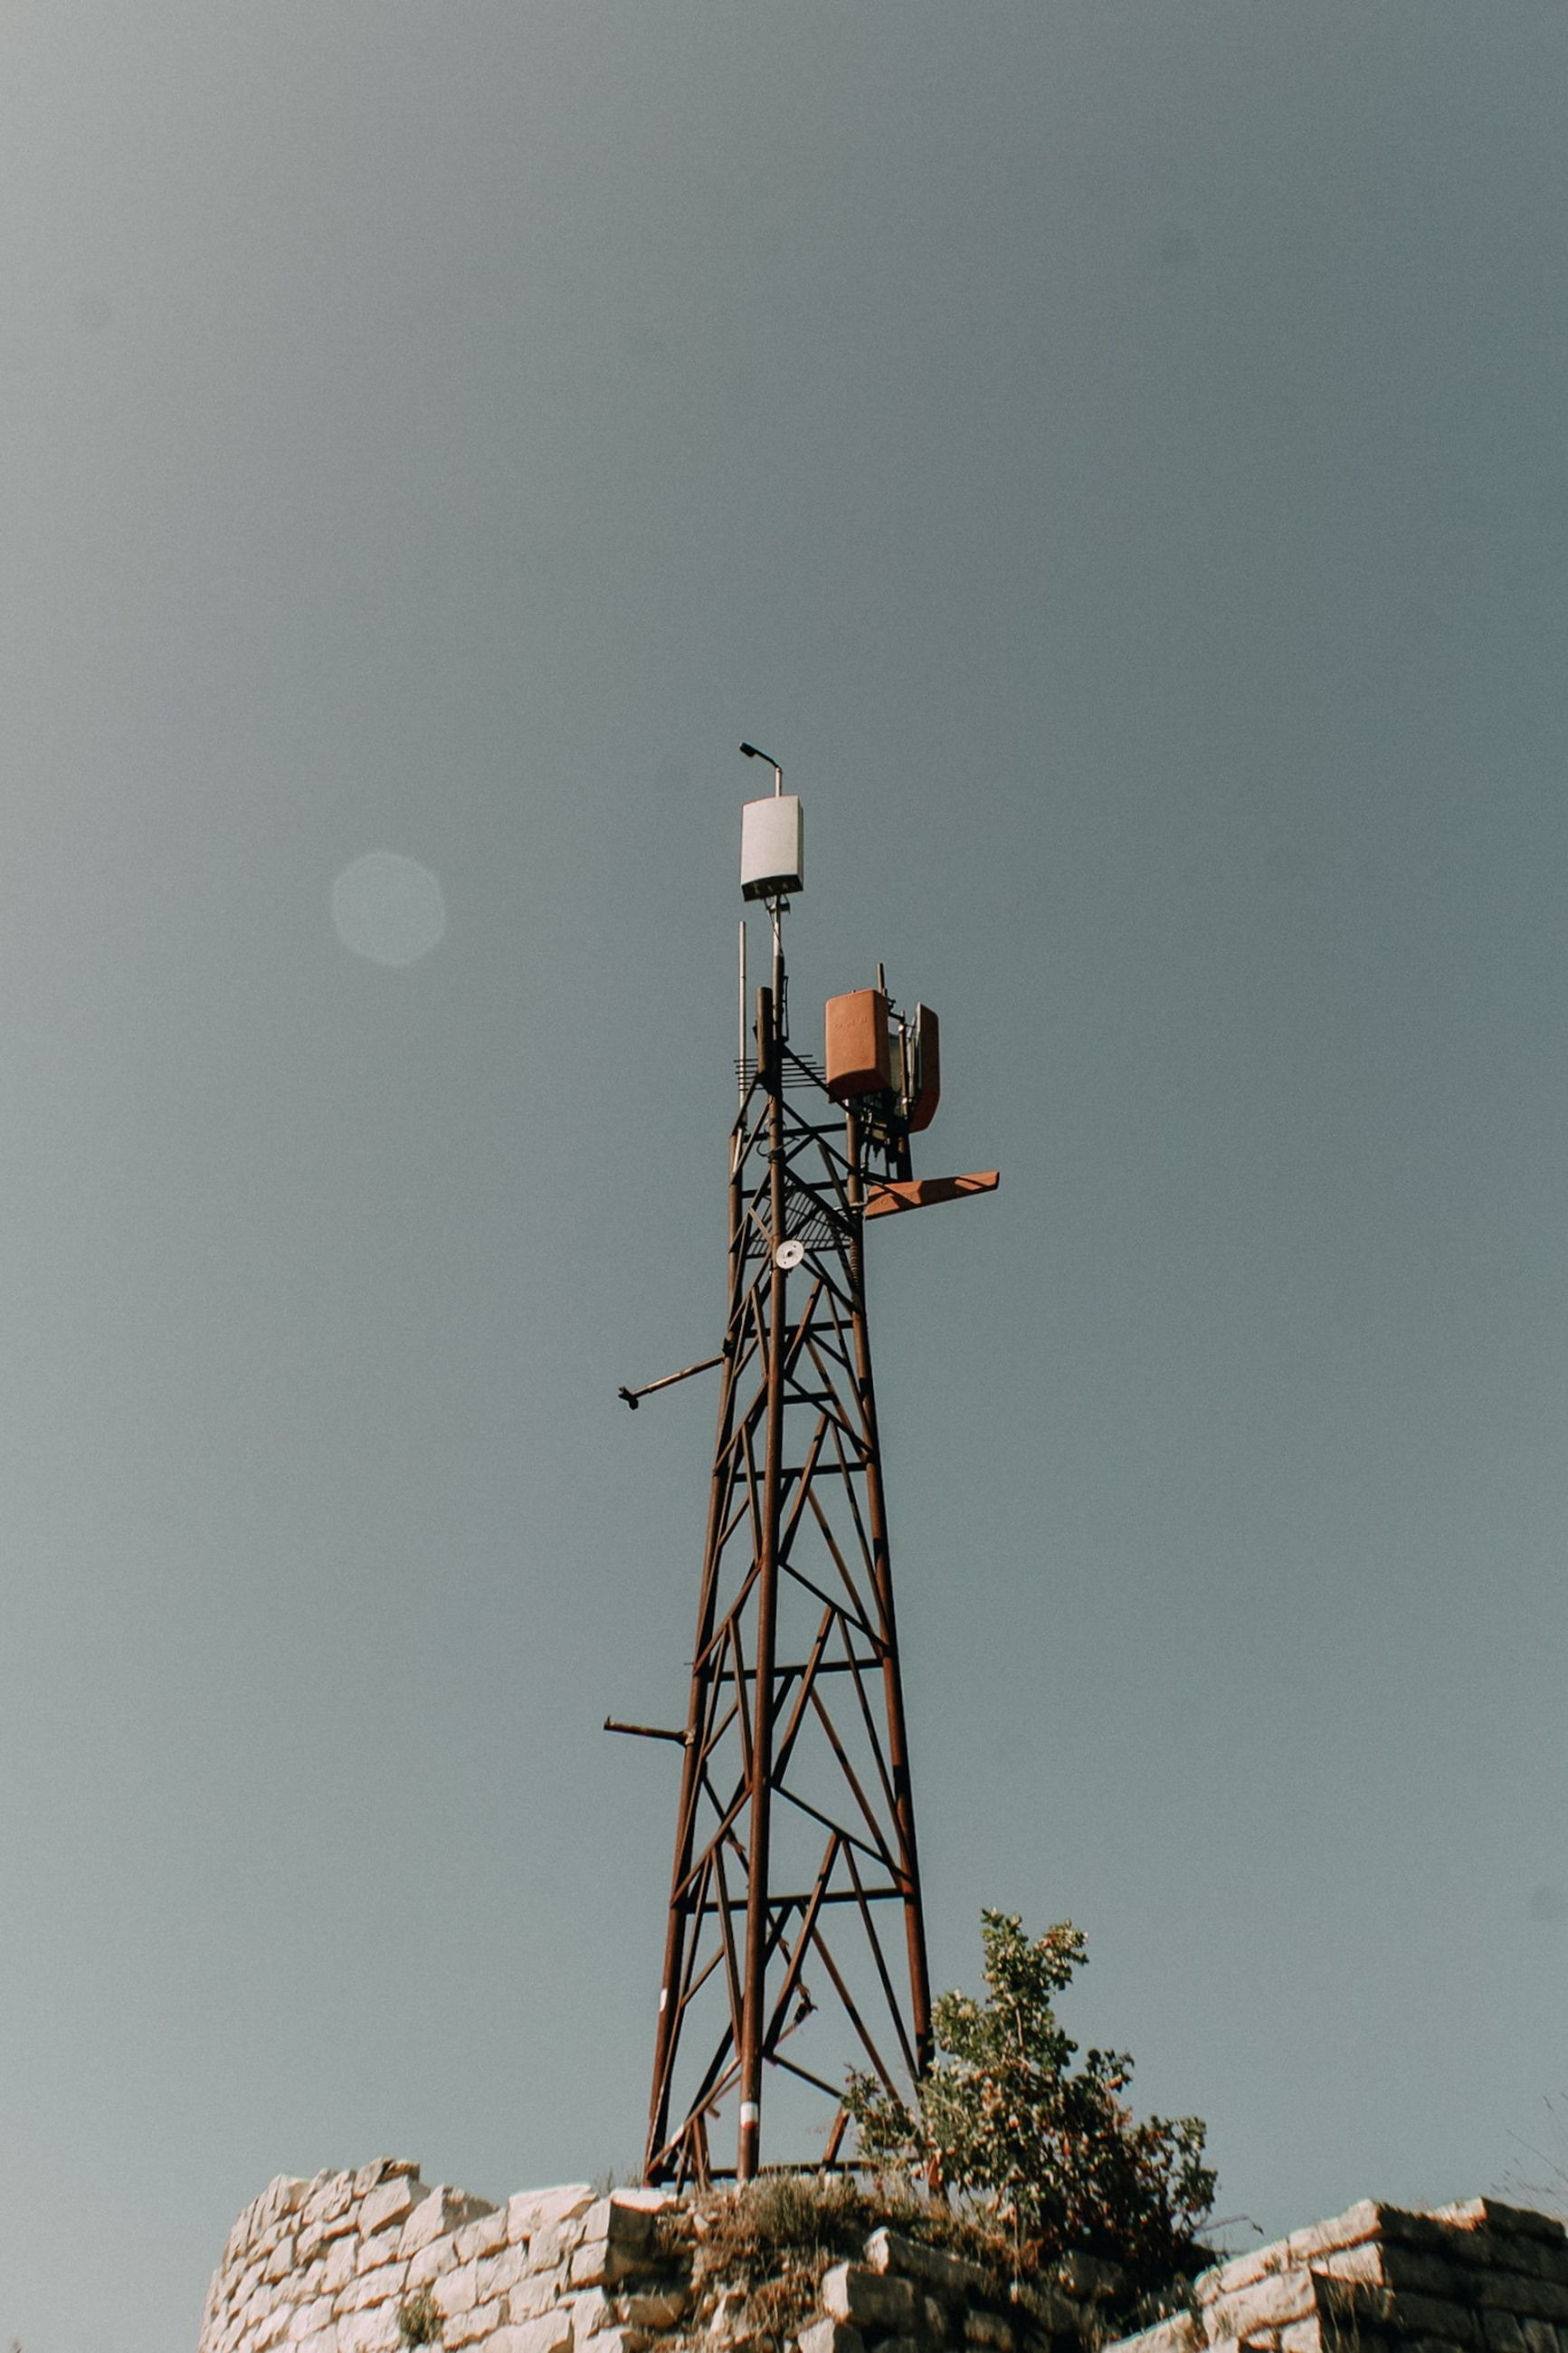 tower, sky, low angle view, built structure, architecture, tall - high, nature, no people, clear sky, copy space, technology, outdoors, day, building exterior, communication, lookout tower, observation point, safety, antenna - aerial, global communications